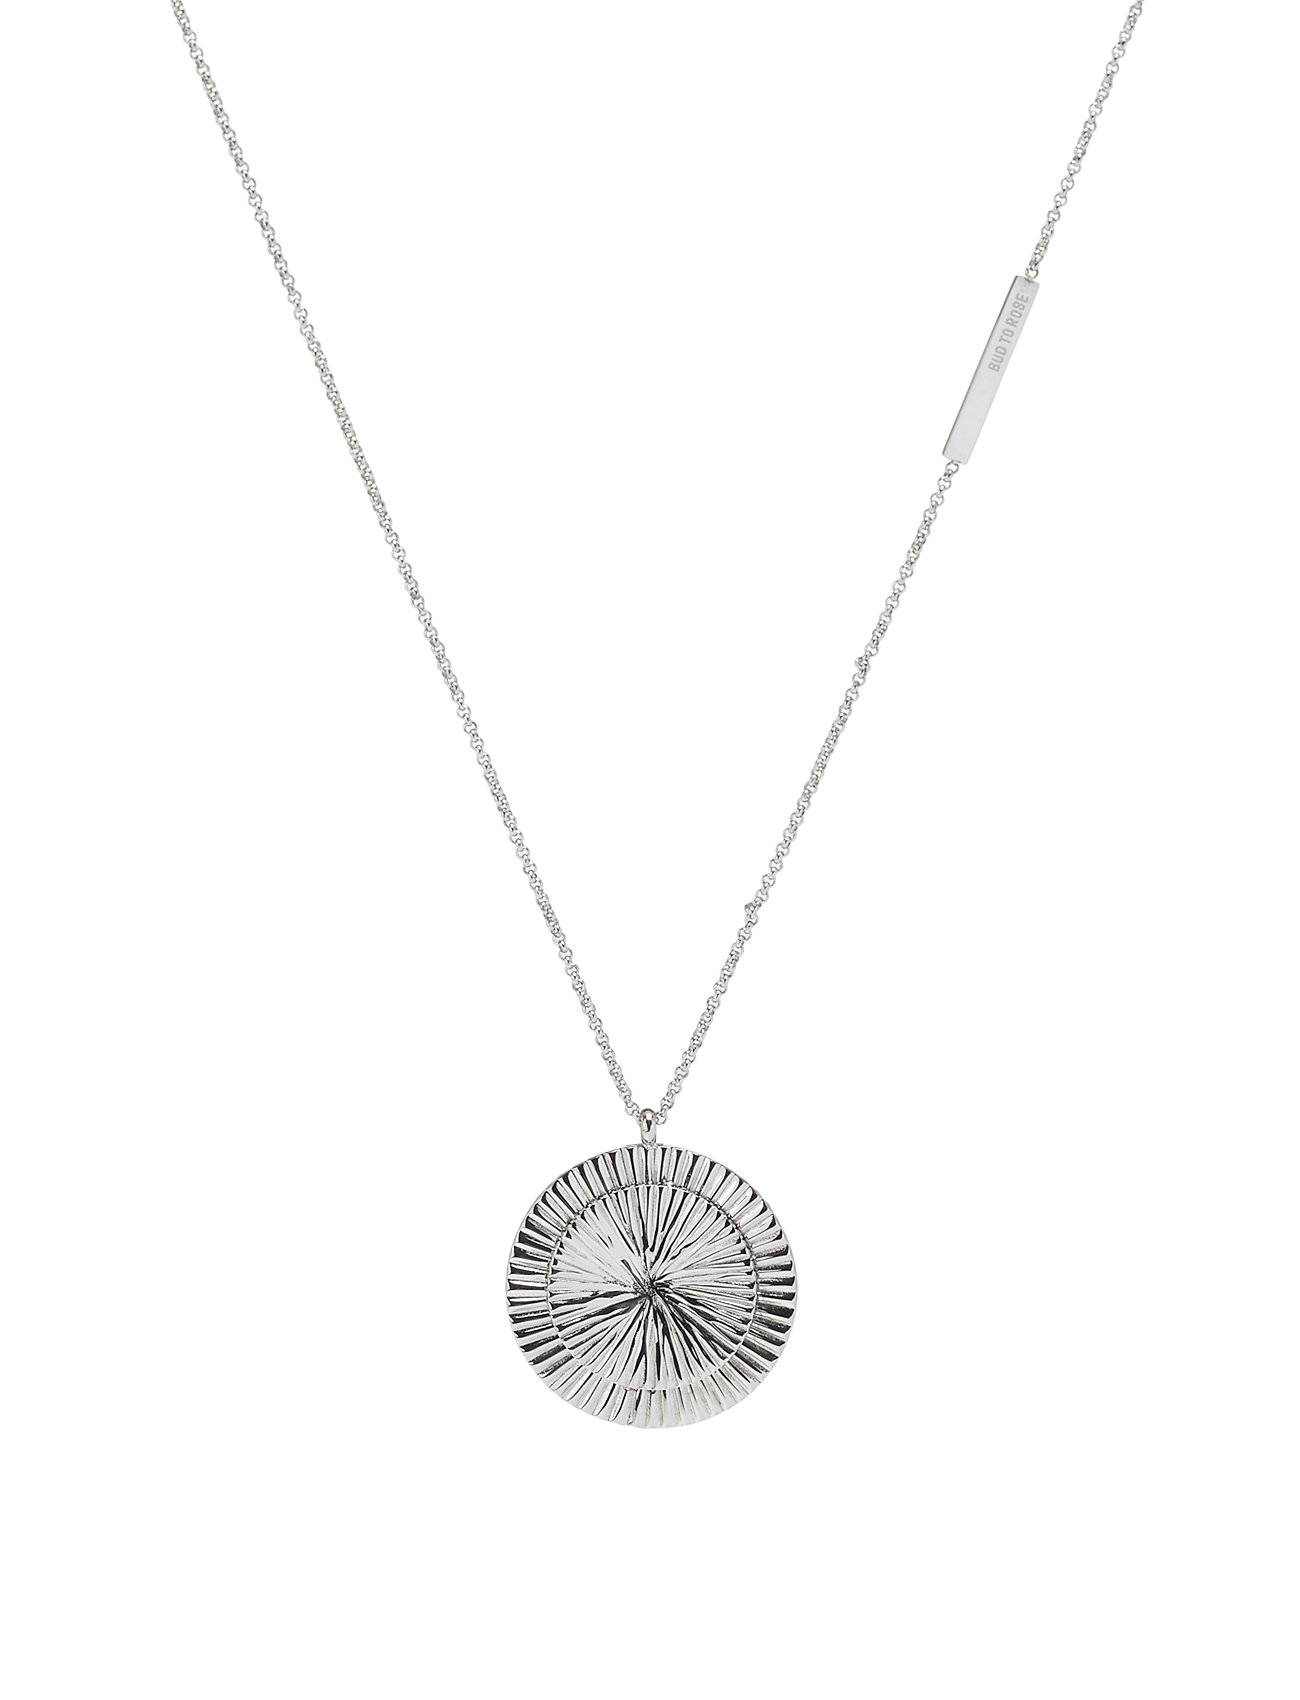 Bud to rose Bianca Short Necklace